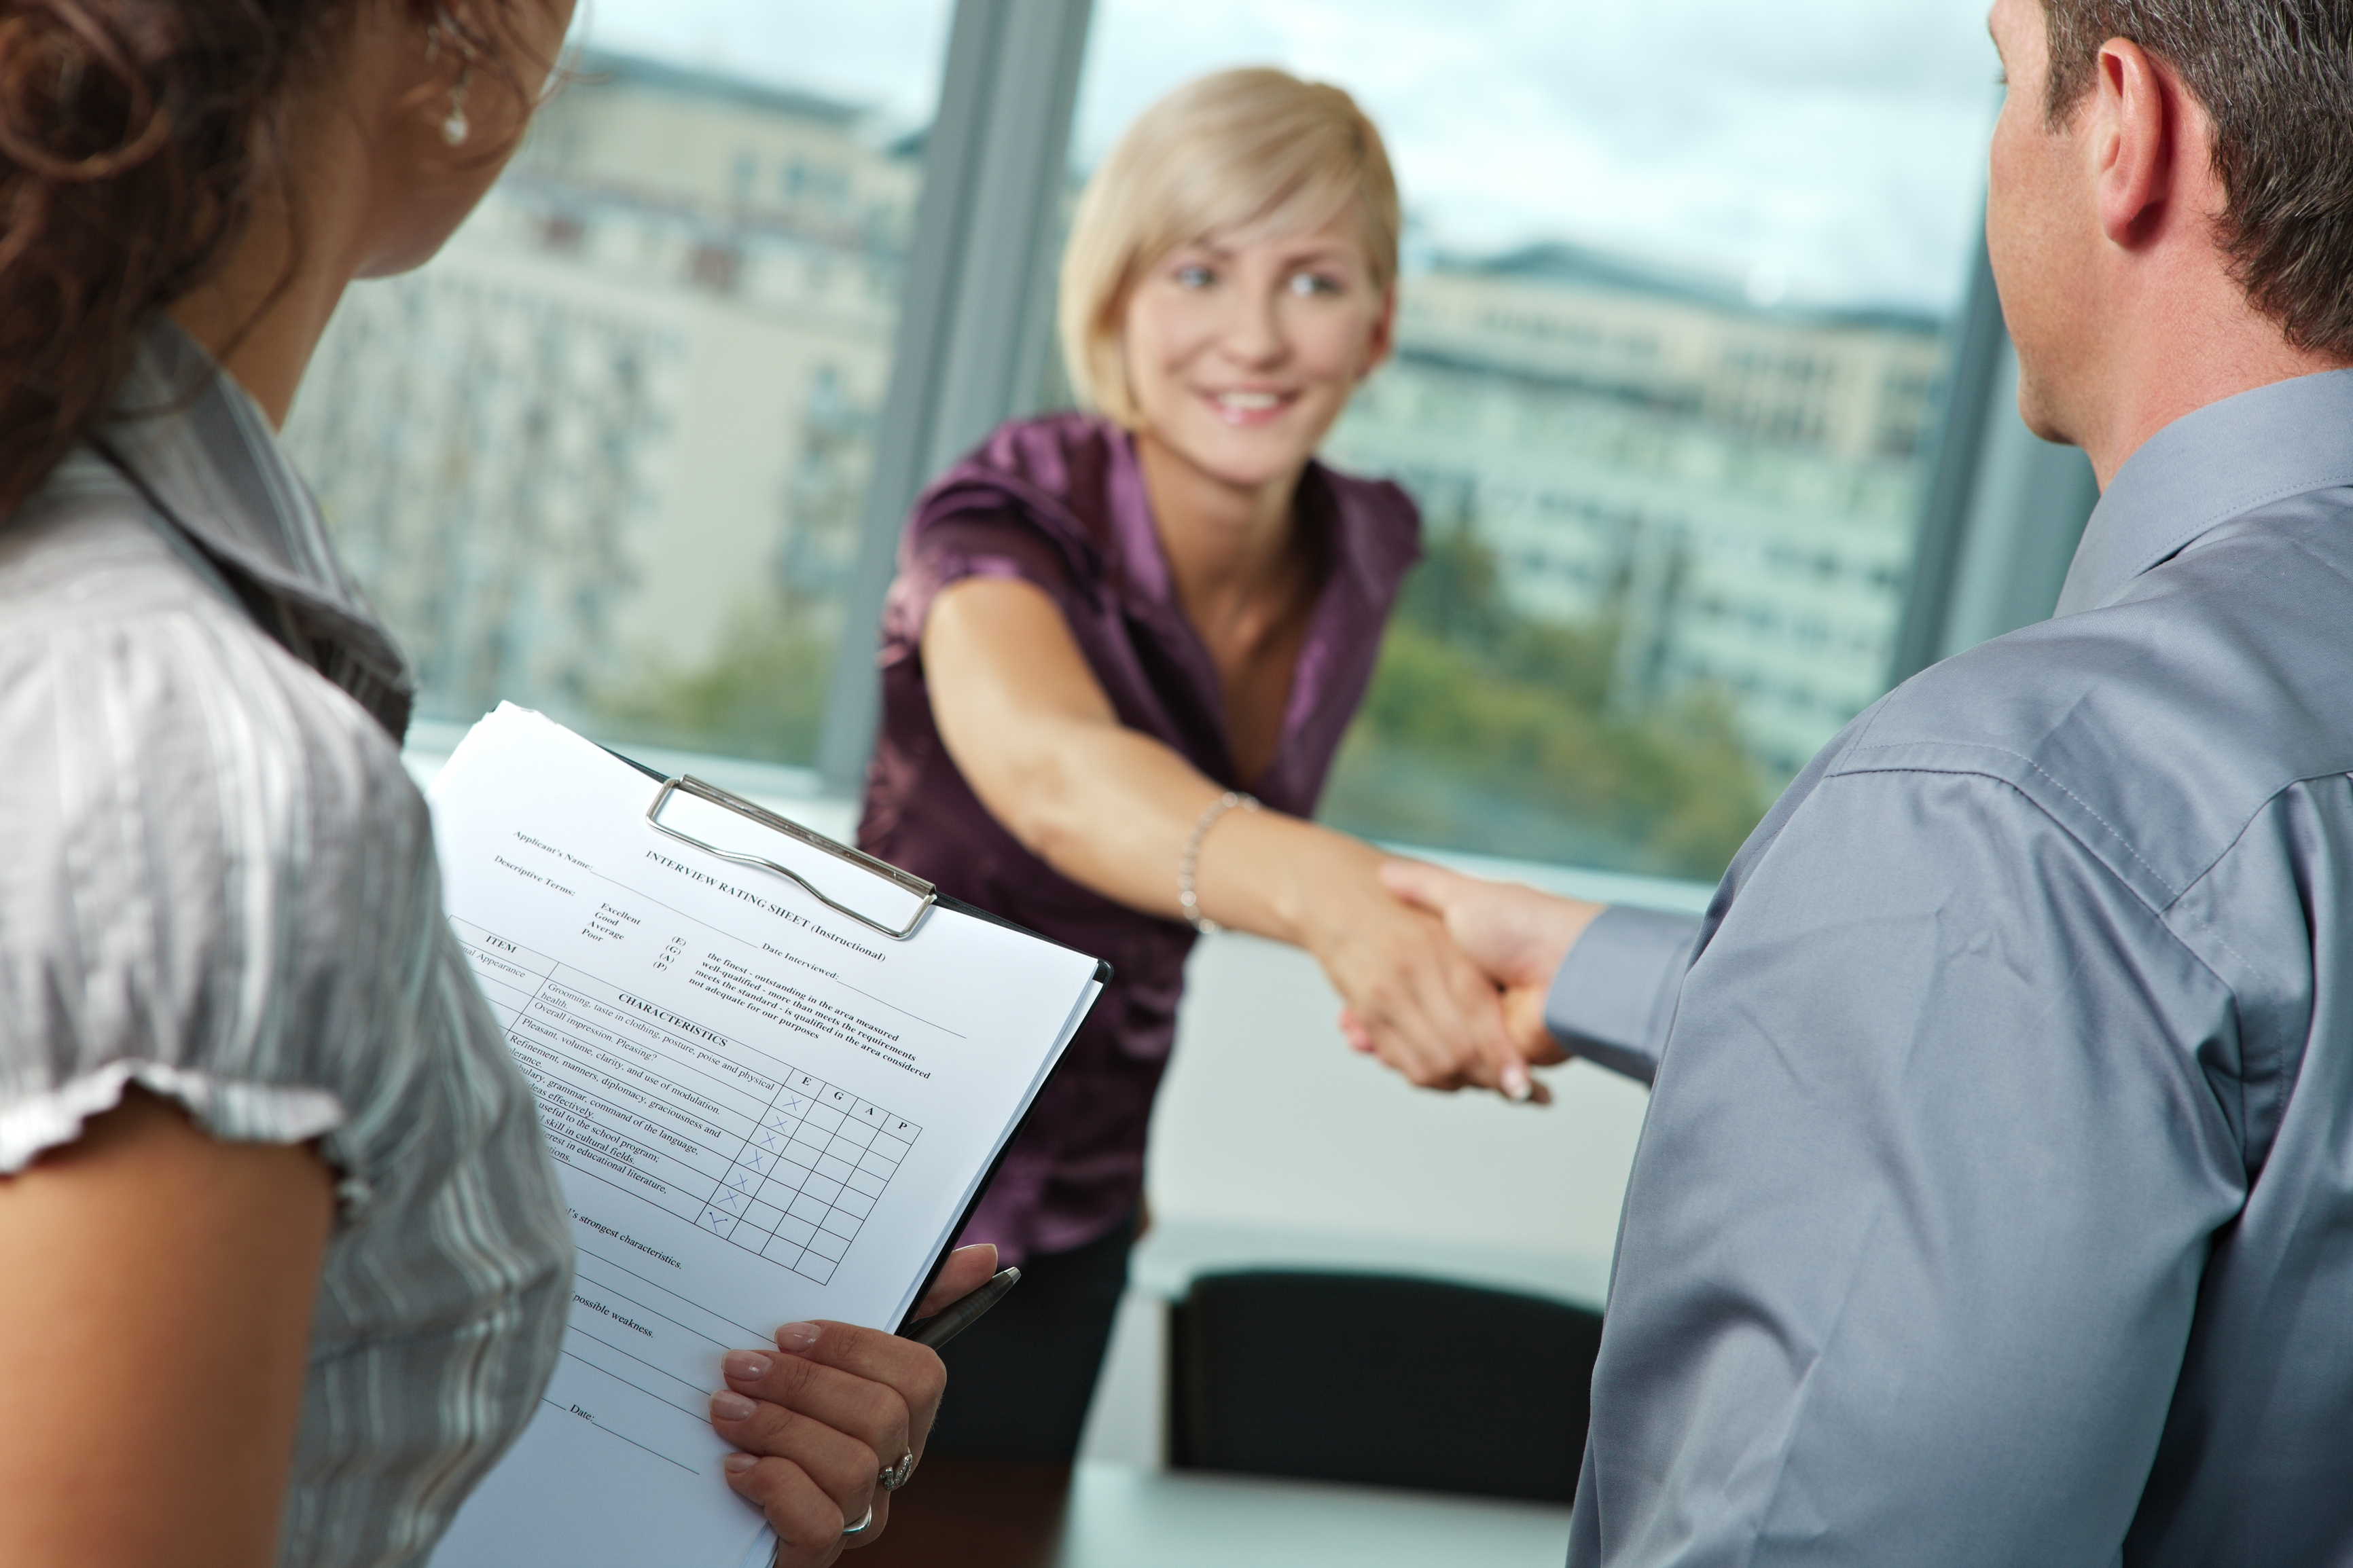 http://www.dreamstime.com/royalty-free-stock-images-successful-job-interview-image11369549